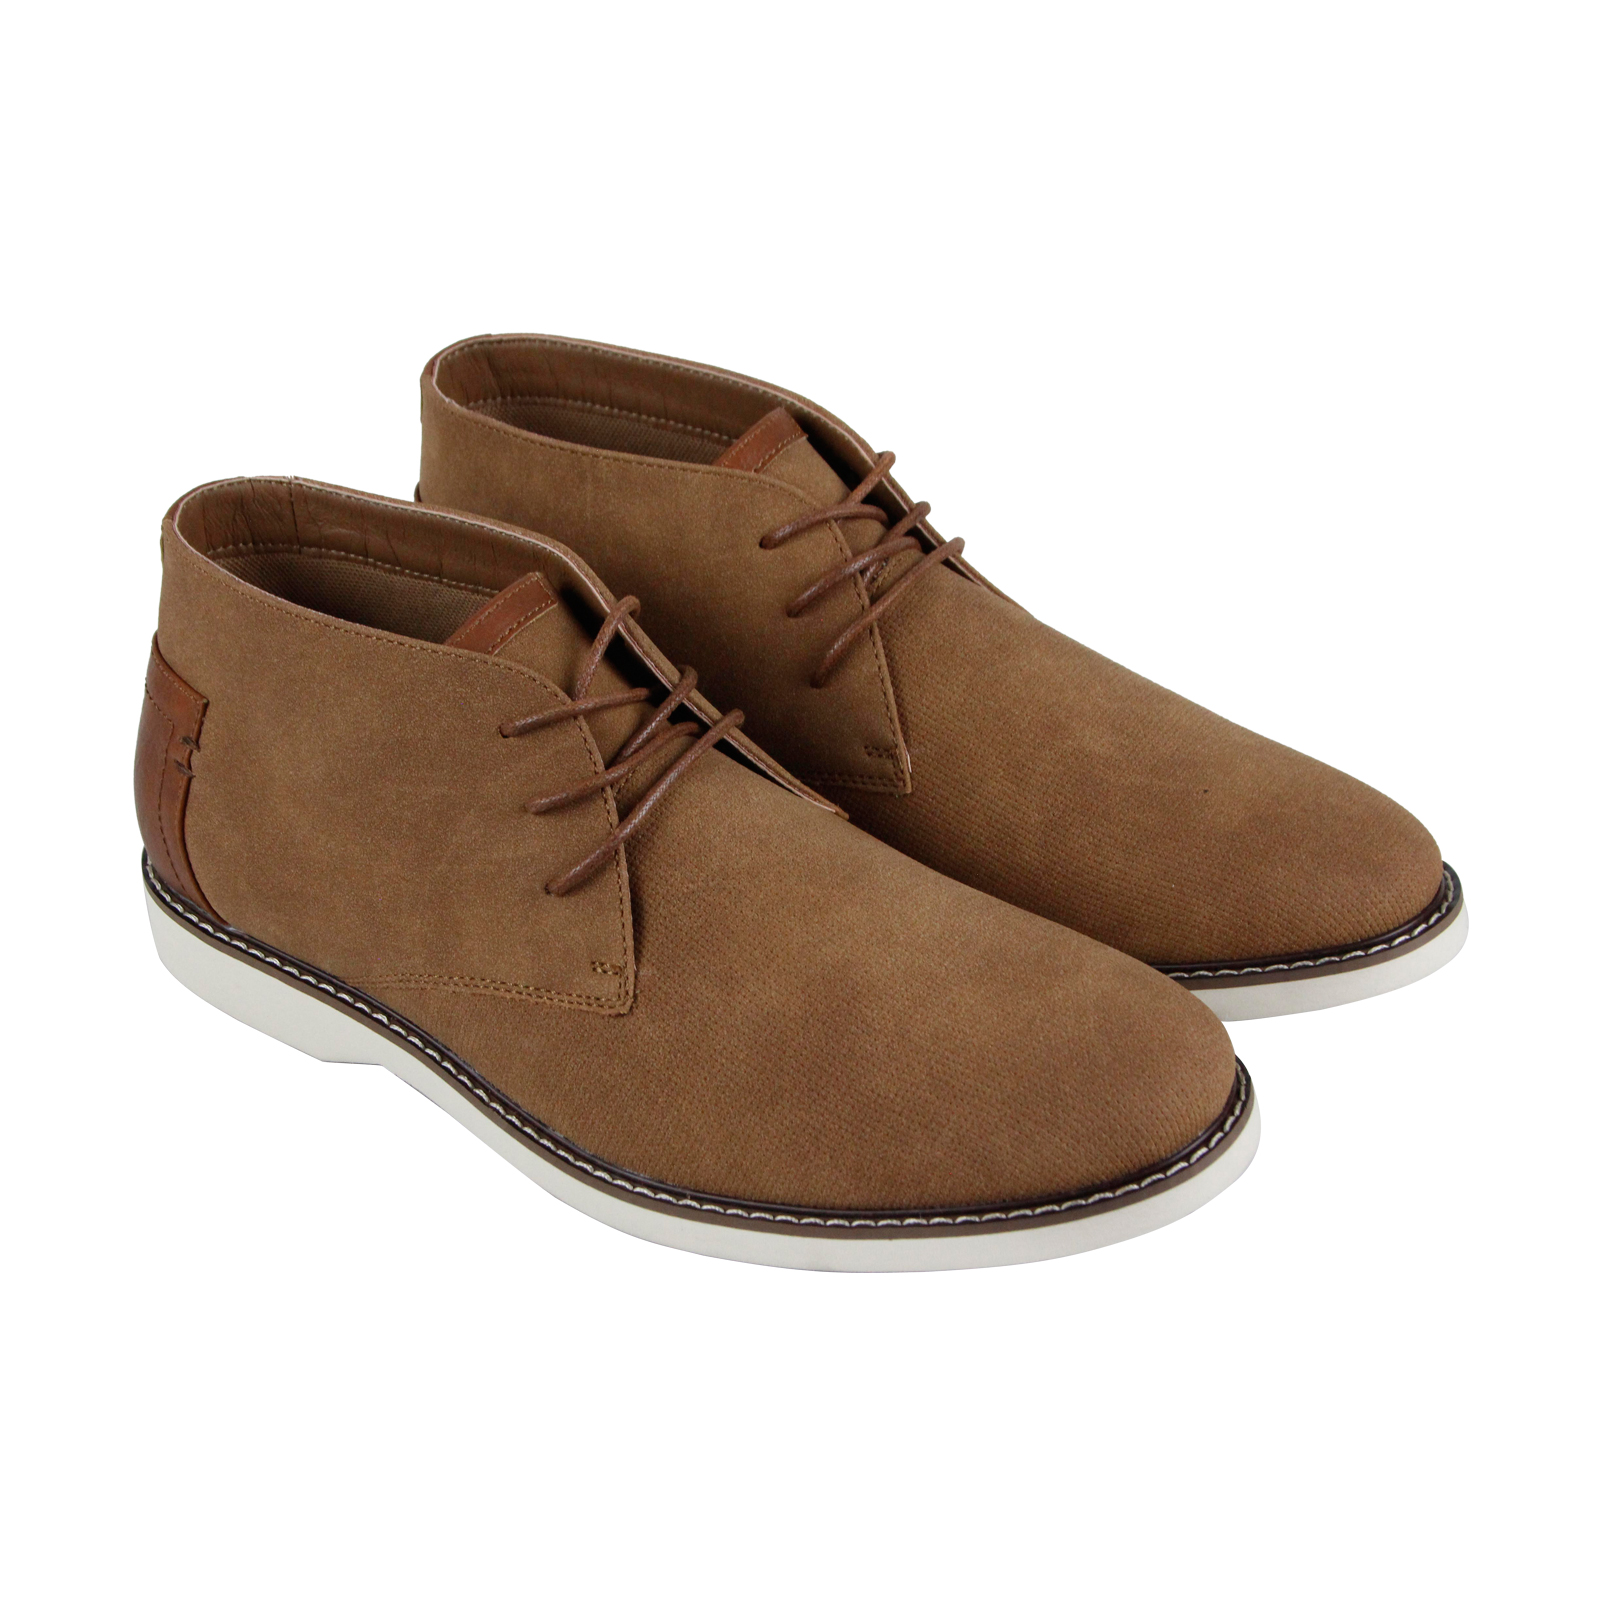 db277eb05fa Details about Steve Madden M-Dodge Mens Brown Nubuck Casual Dress Lace Up  Chukkas Shoes